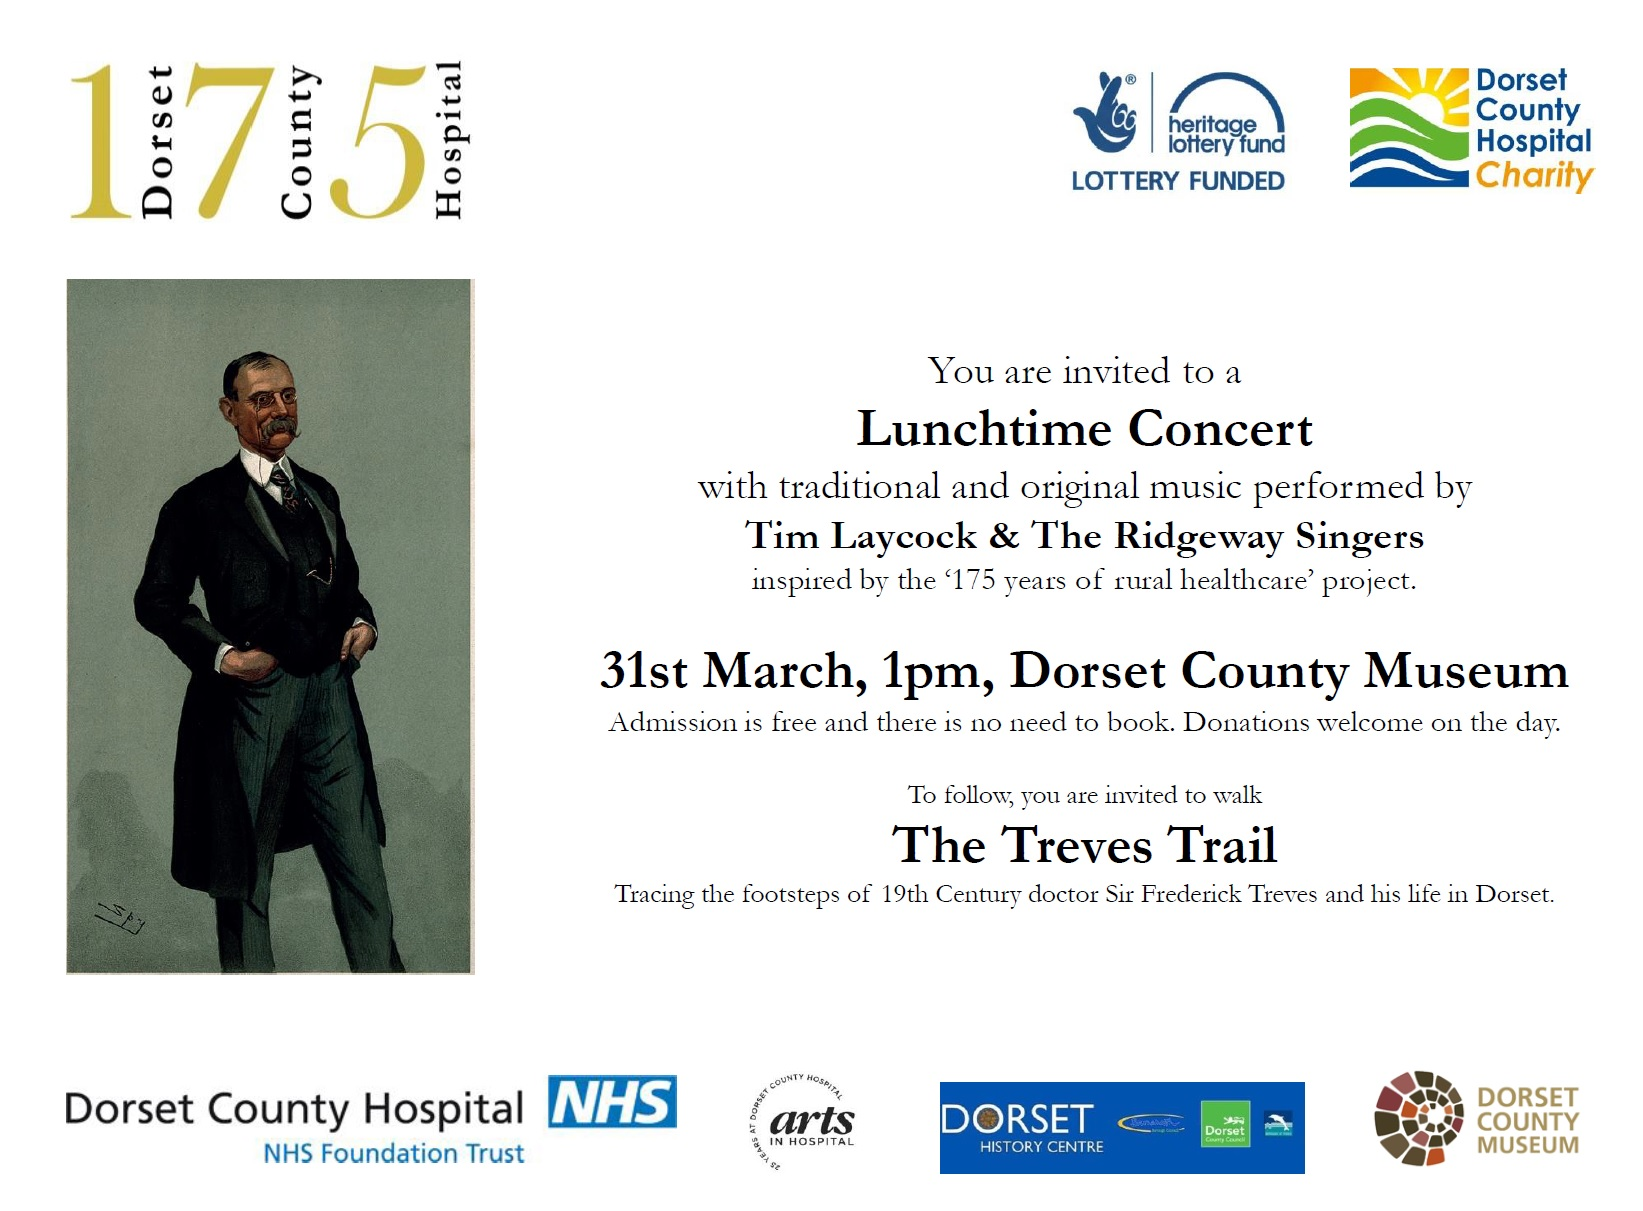 Archive 2016 the history of dorset county hospital an invitation to the final event to mark the hospitals 175th anniversary celebrations stopboris Image collections